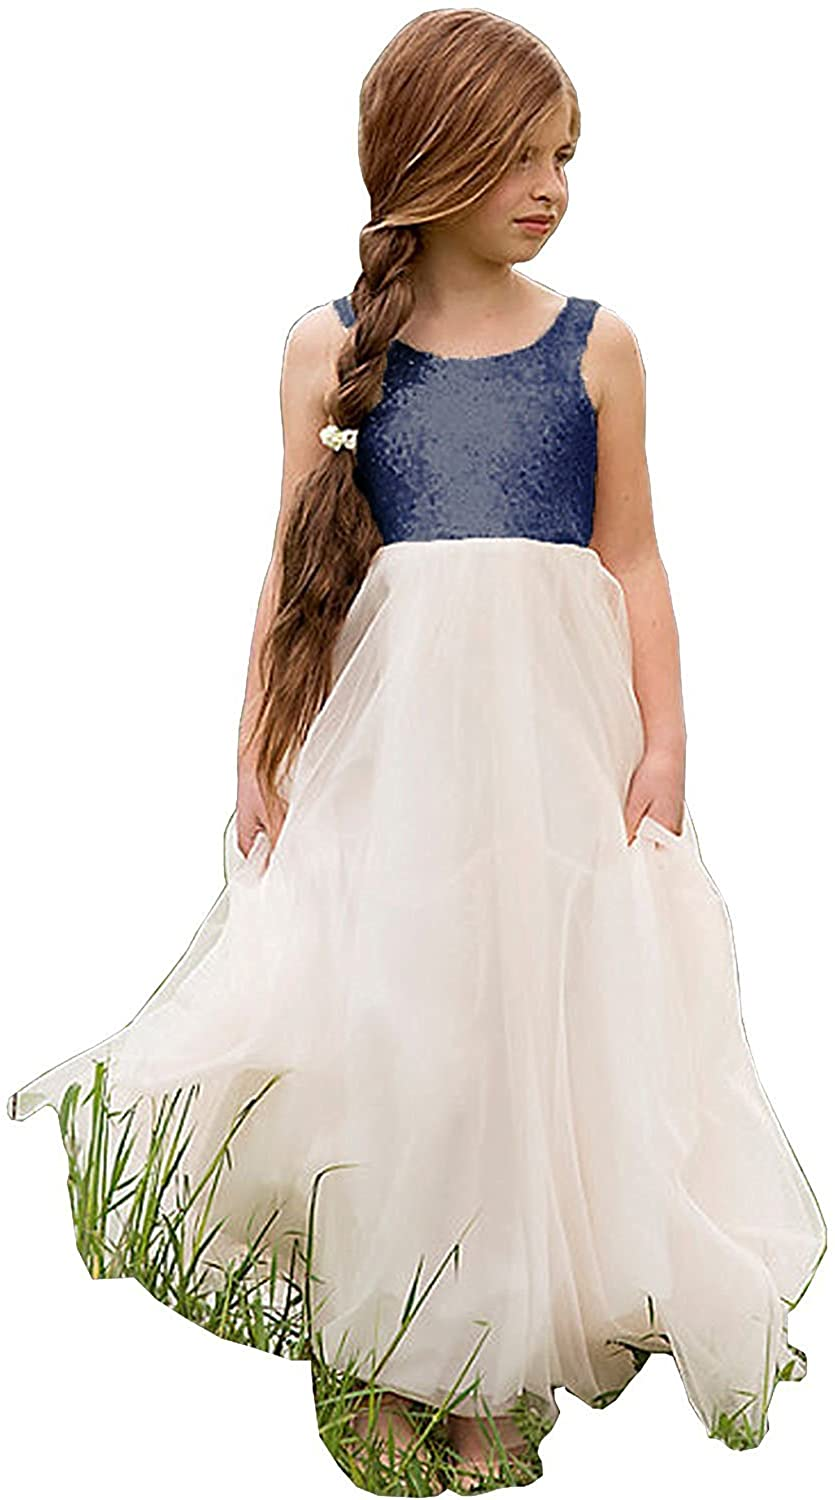 Wedding Sequin Flower Girl Dresses Tulle Pageant Party Evening Dance Gowns E164